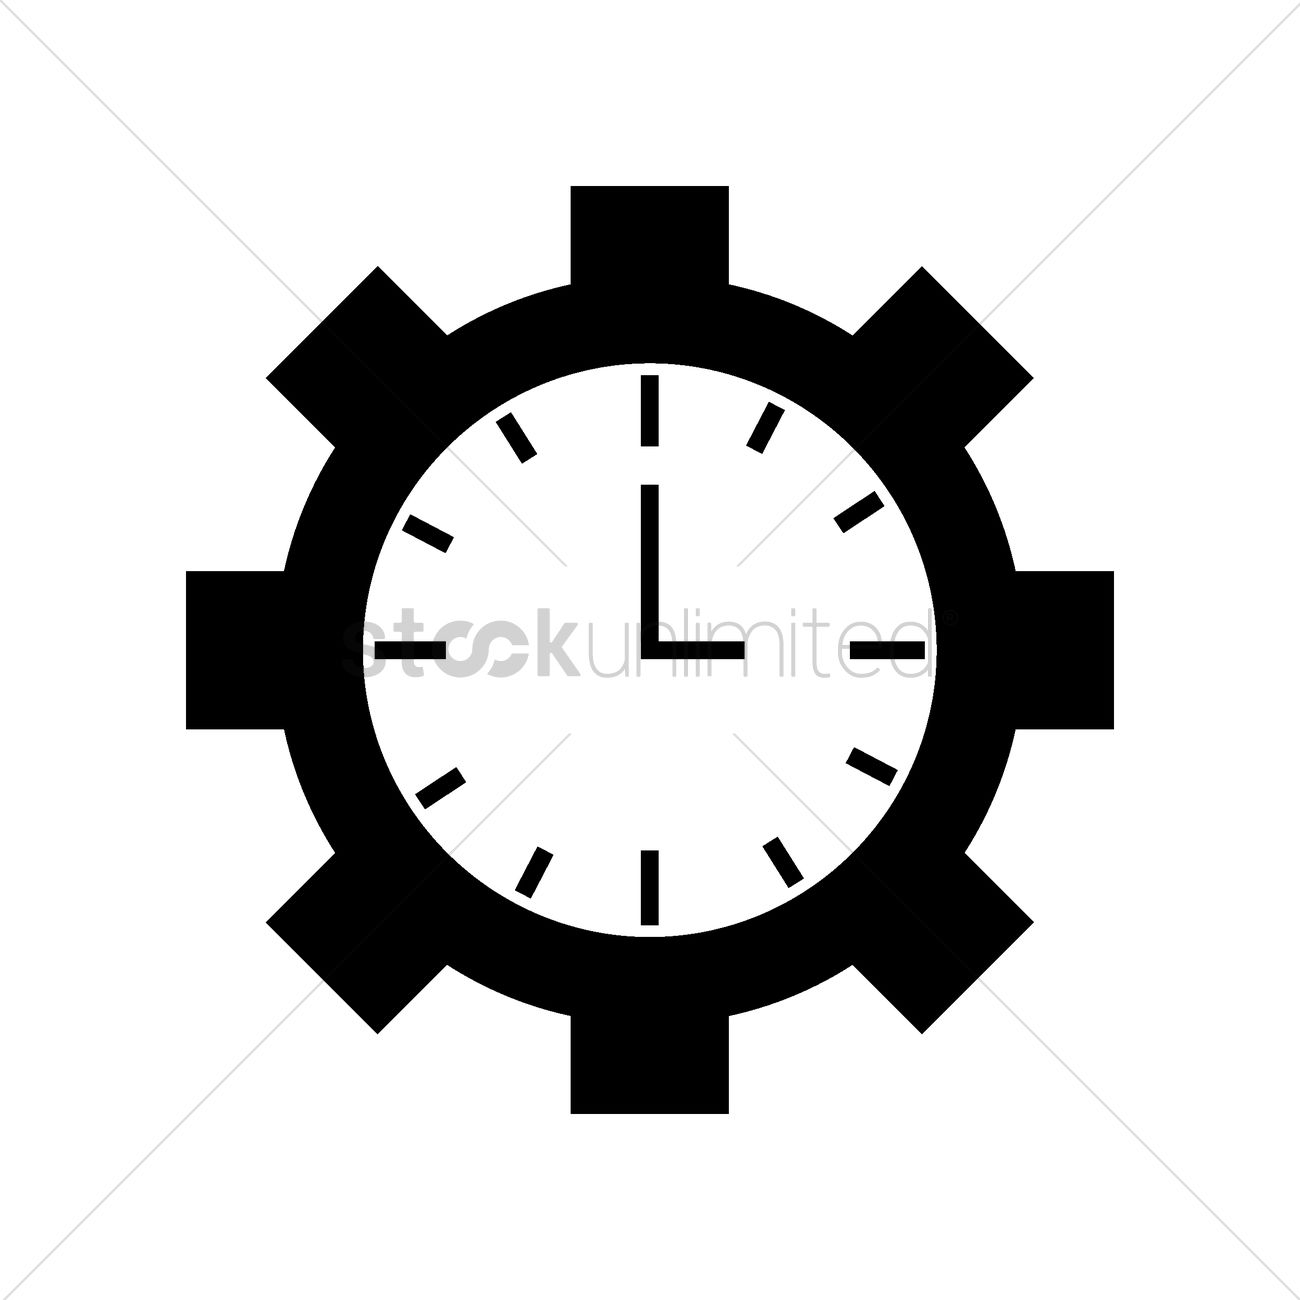 Clock icon Vector Image - 2004599 | StockUnlimited